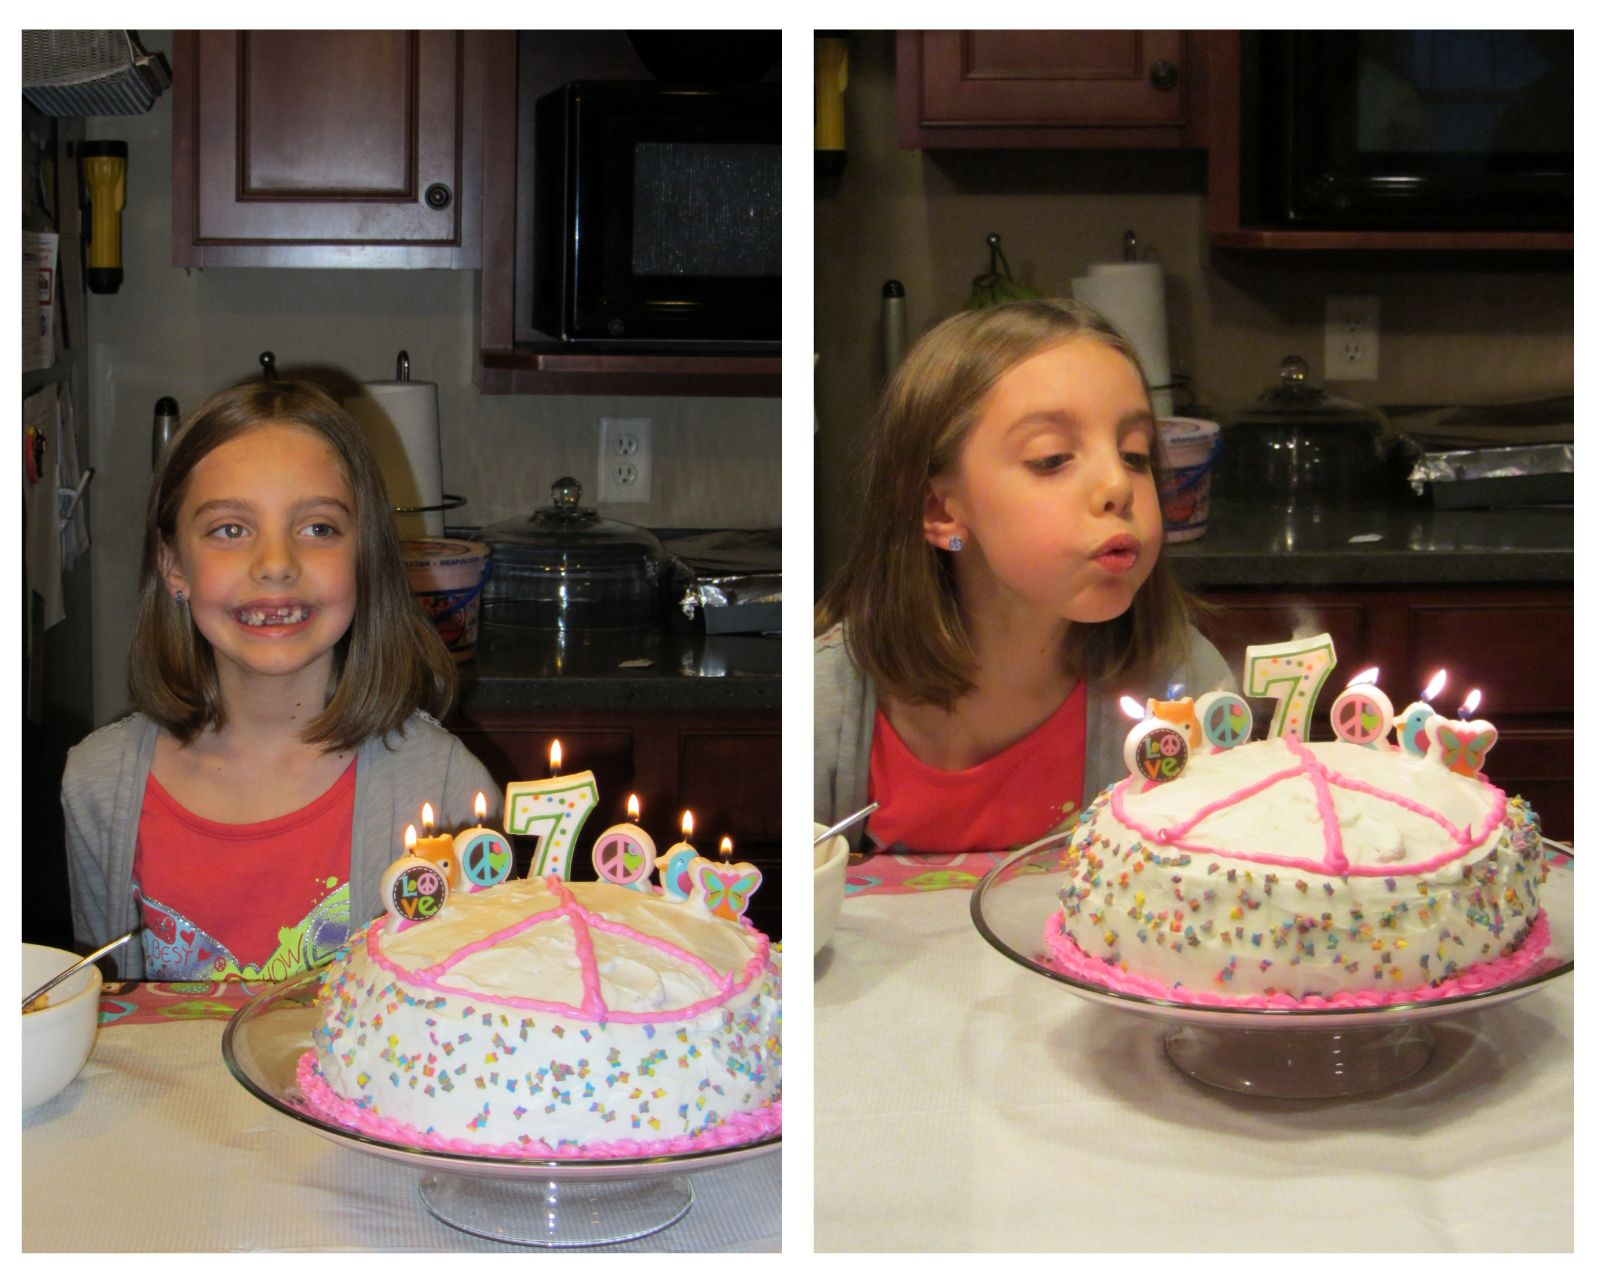 Gracie and cake